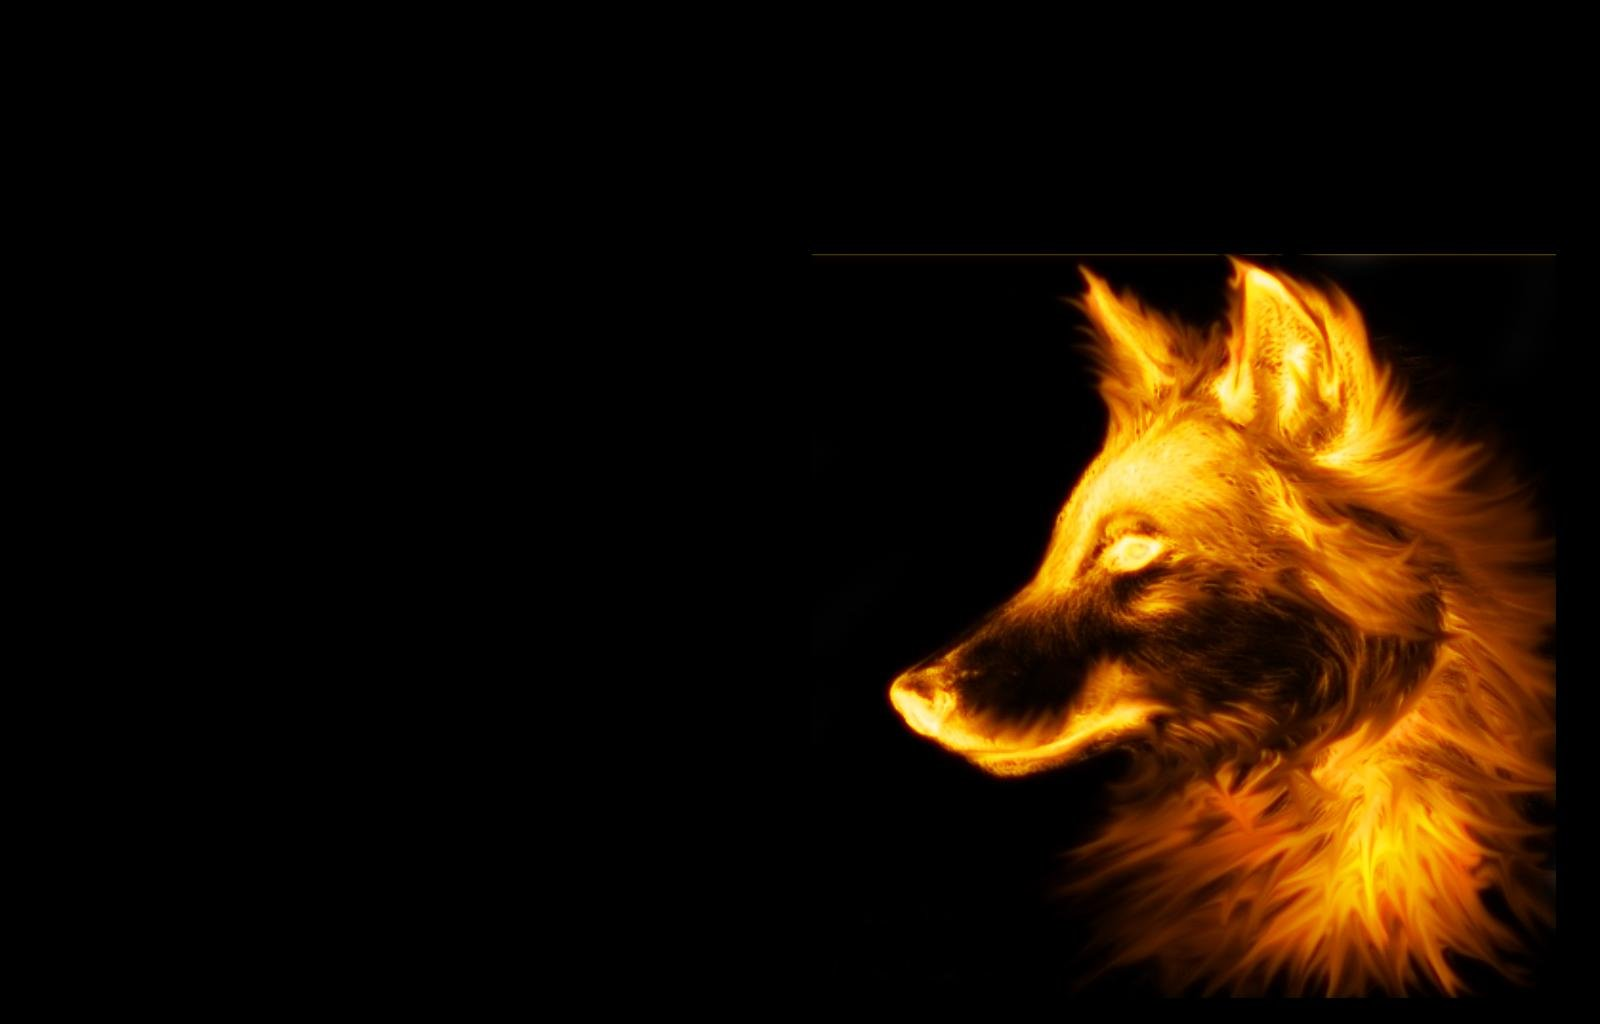 Fire Wolf Wallpaper 1600x1024 Fire, Wolf, Black, Background